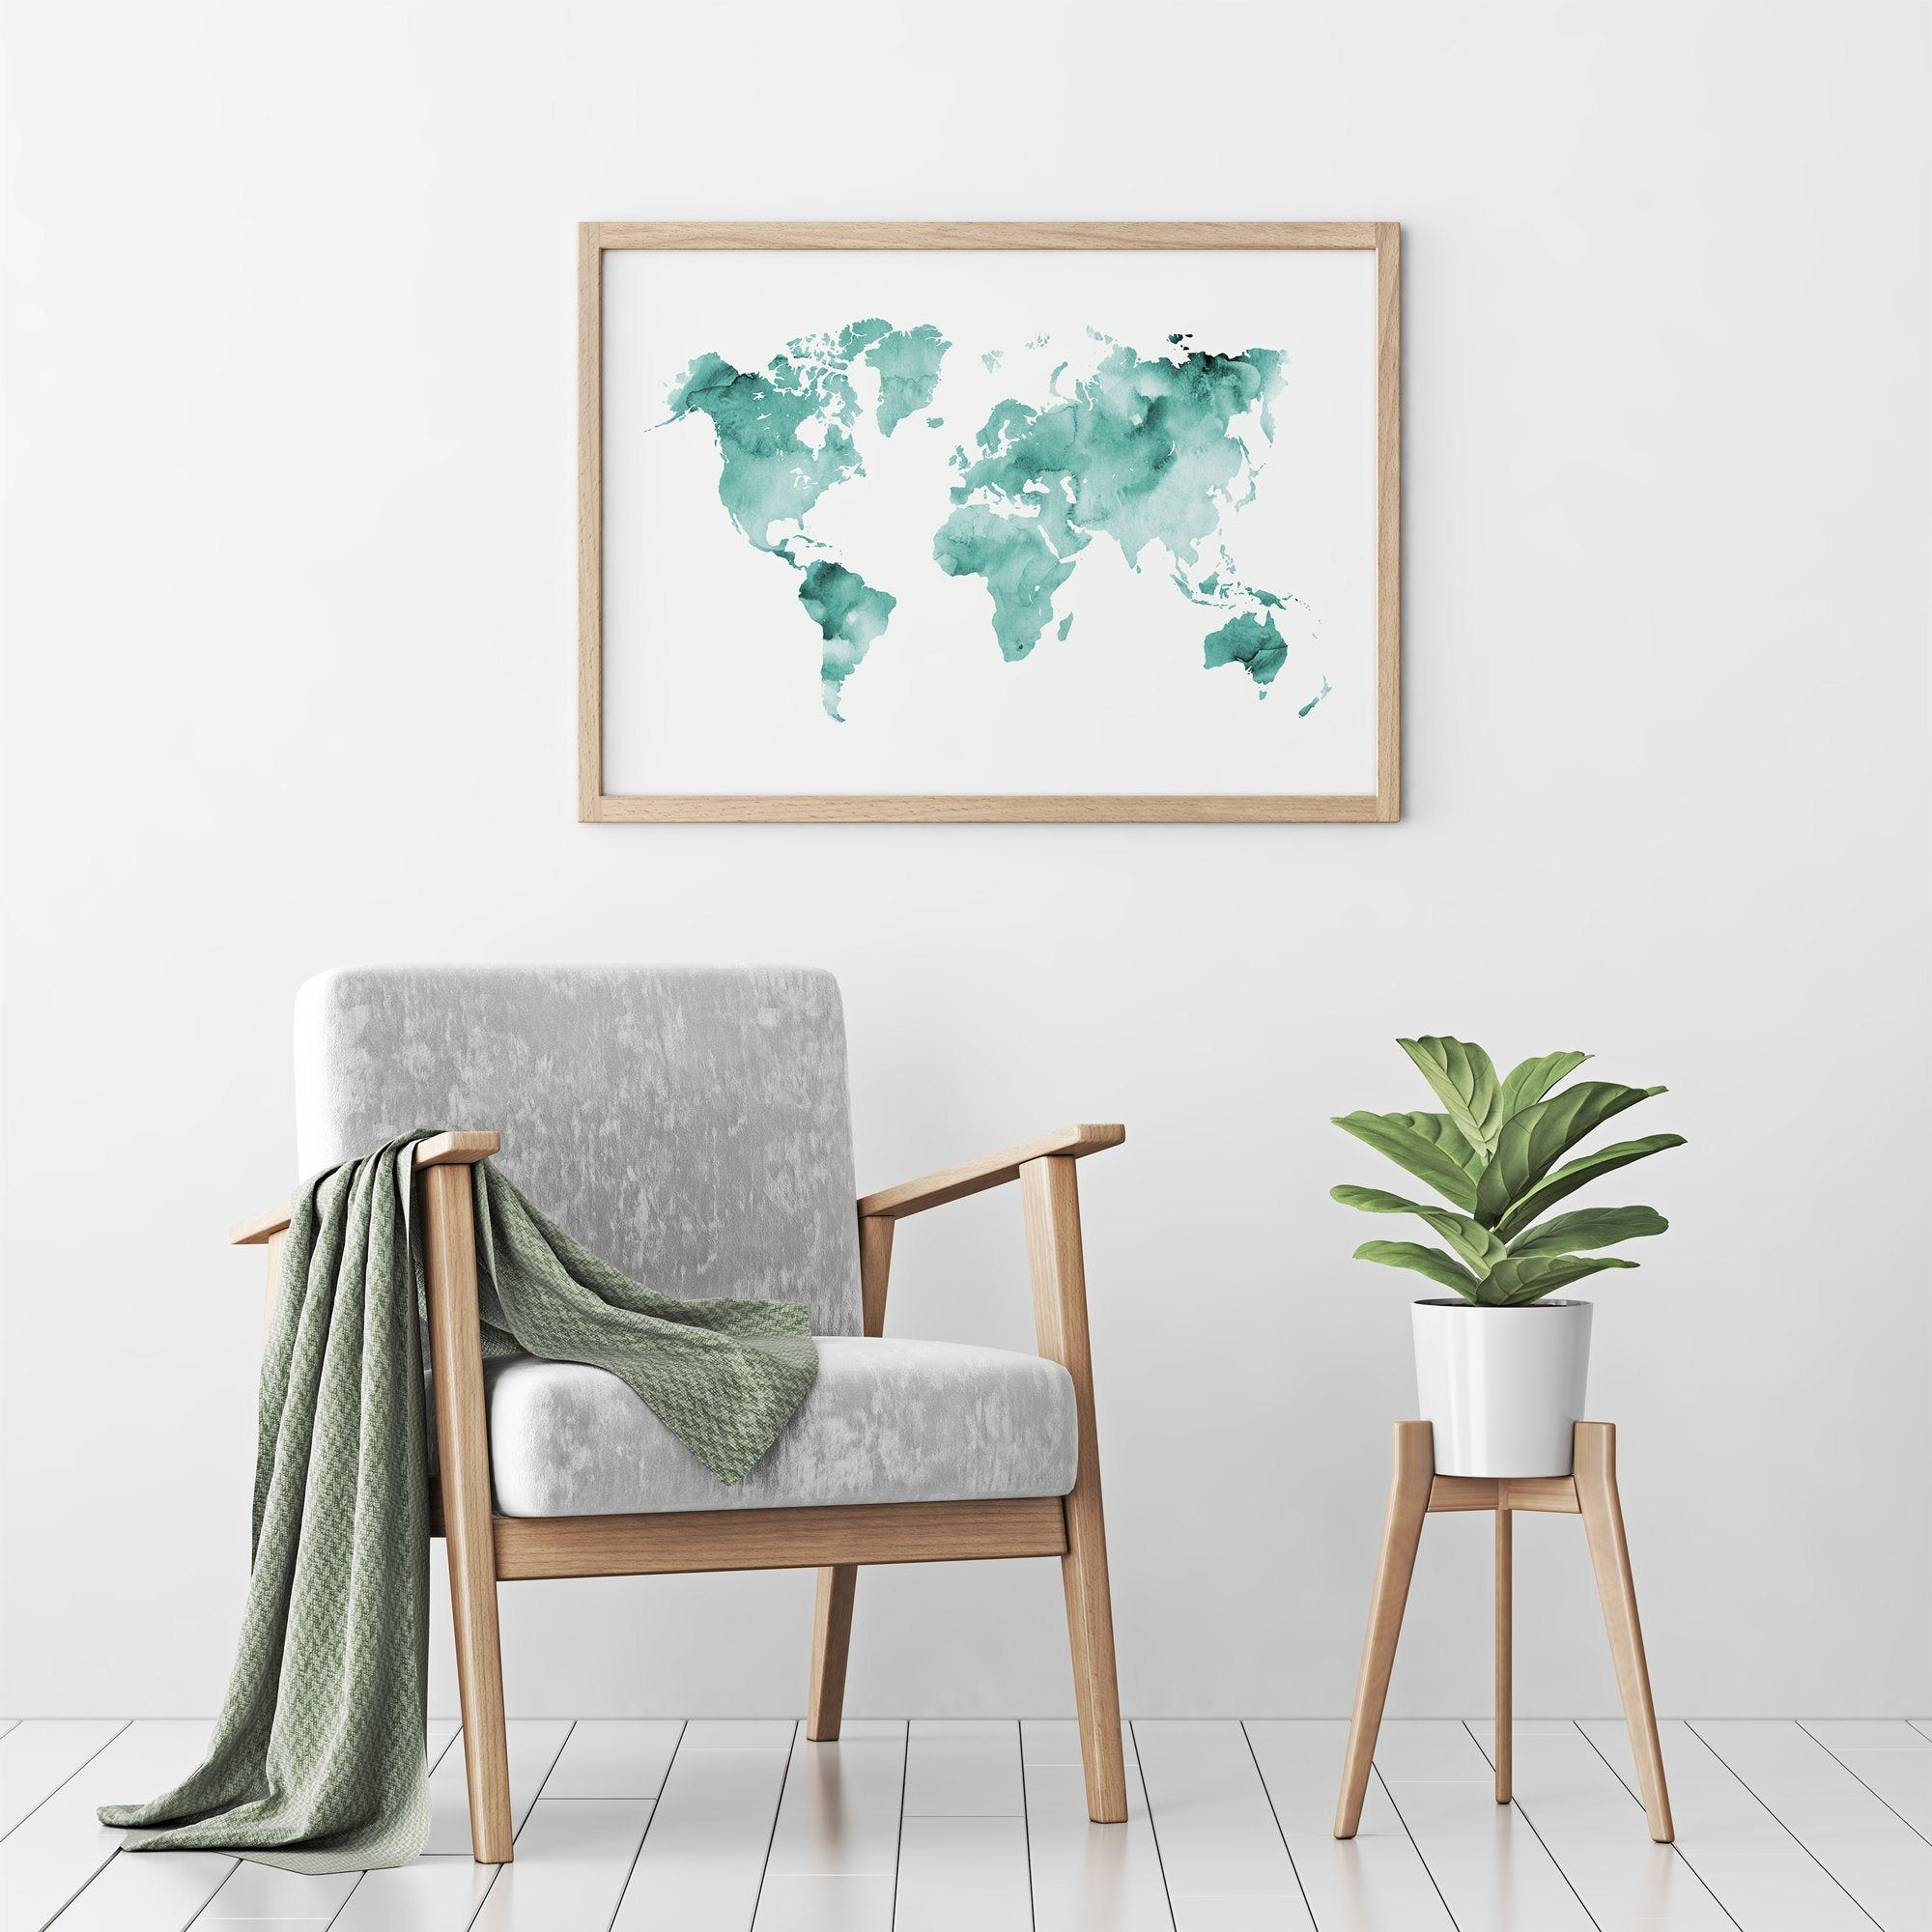 Deep blue watercolour world map poster timiko studio turquoise teal watercolour world map poster print in wood frame above modern chair turquoise teal watercolour world map poster print in wood frame above gumiabroncs Images